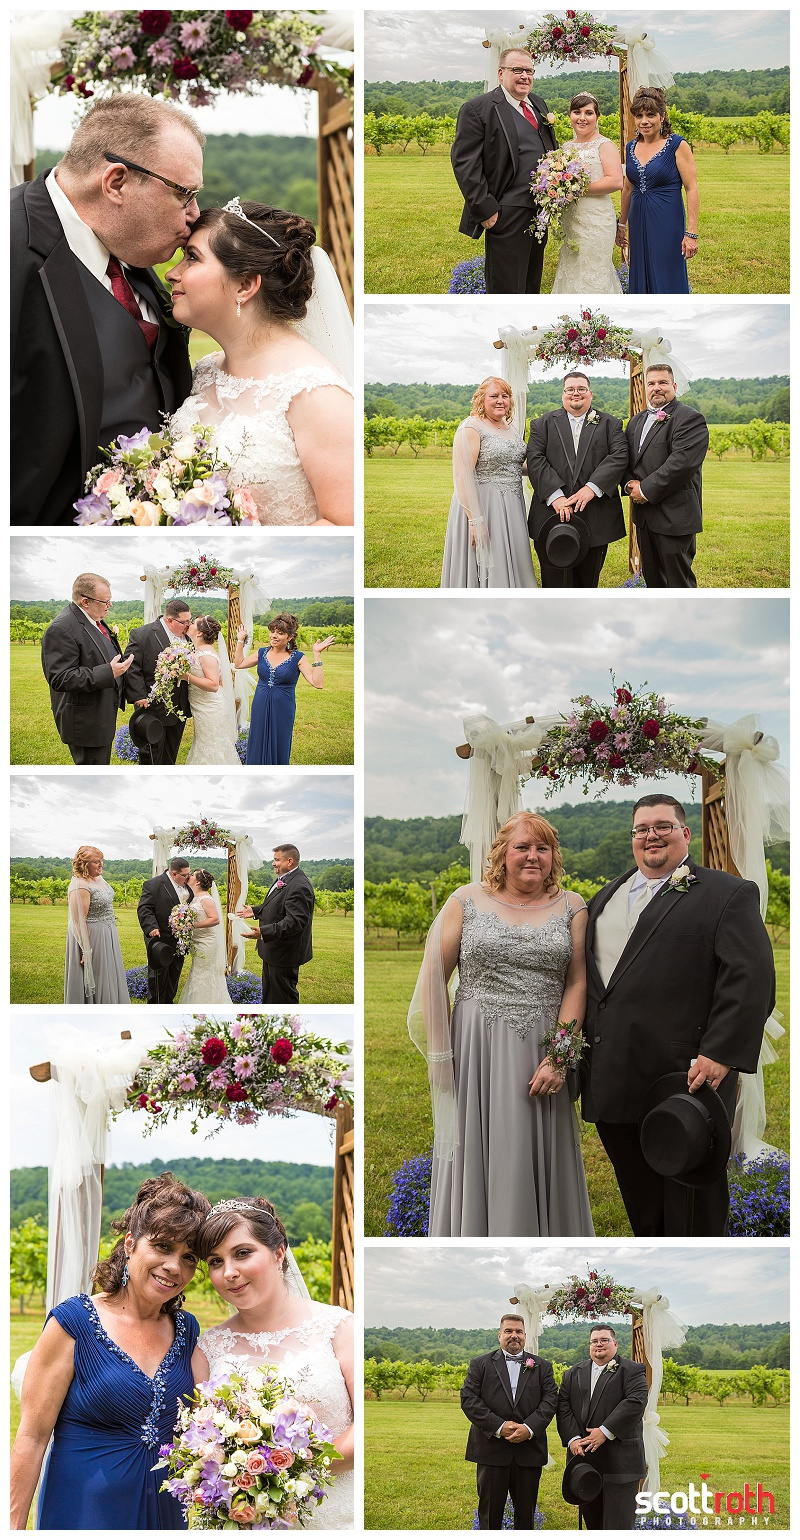 nj-wedding-photography- belvidere-2620.jpg